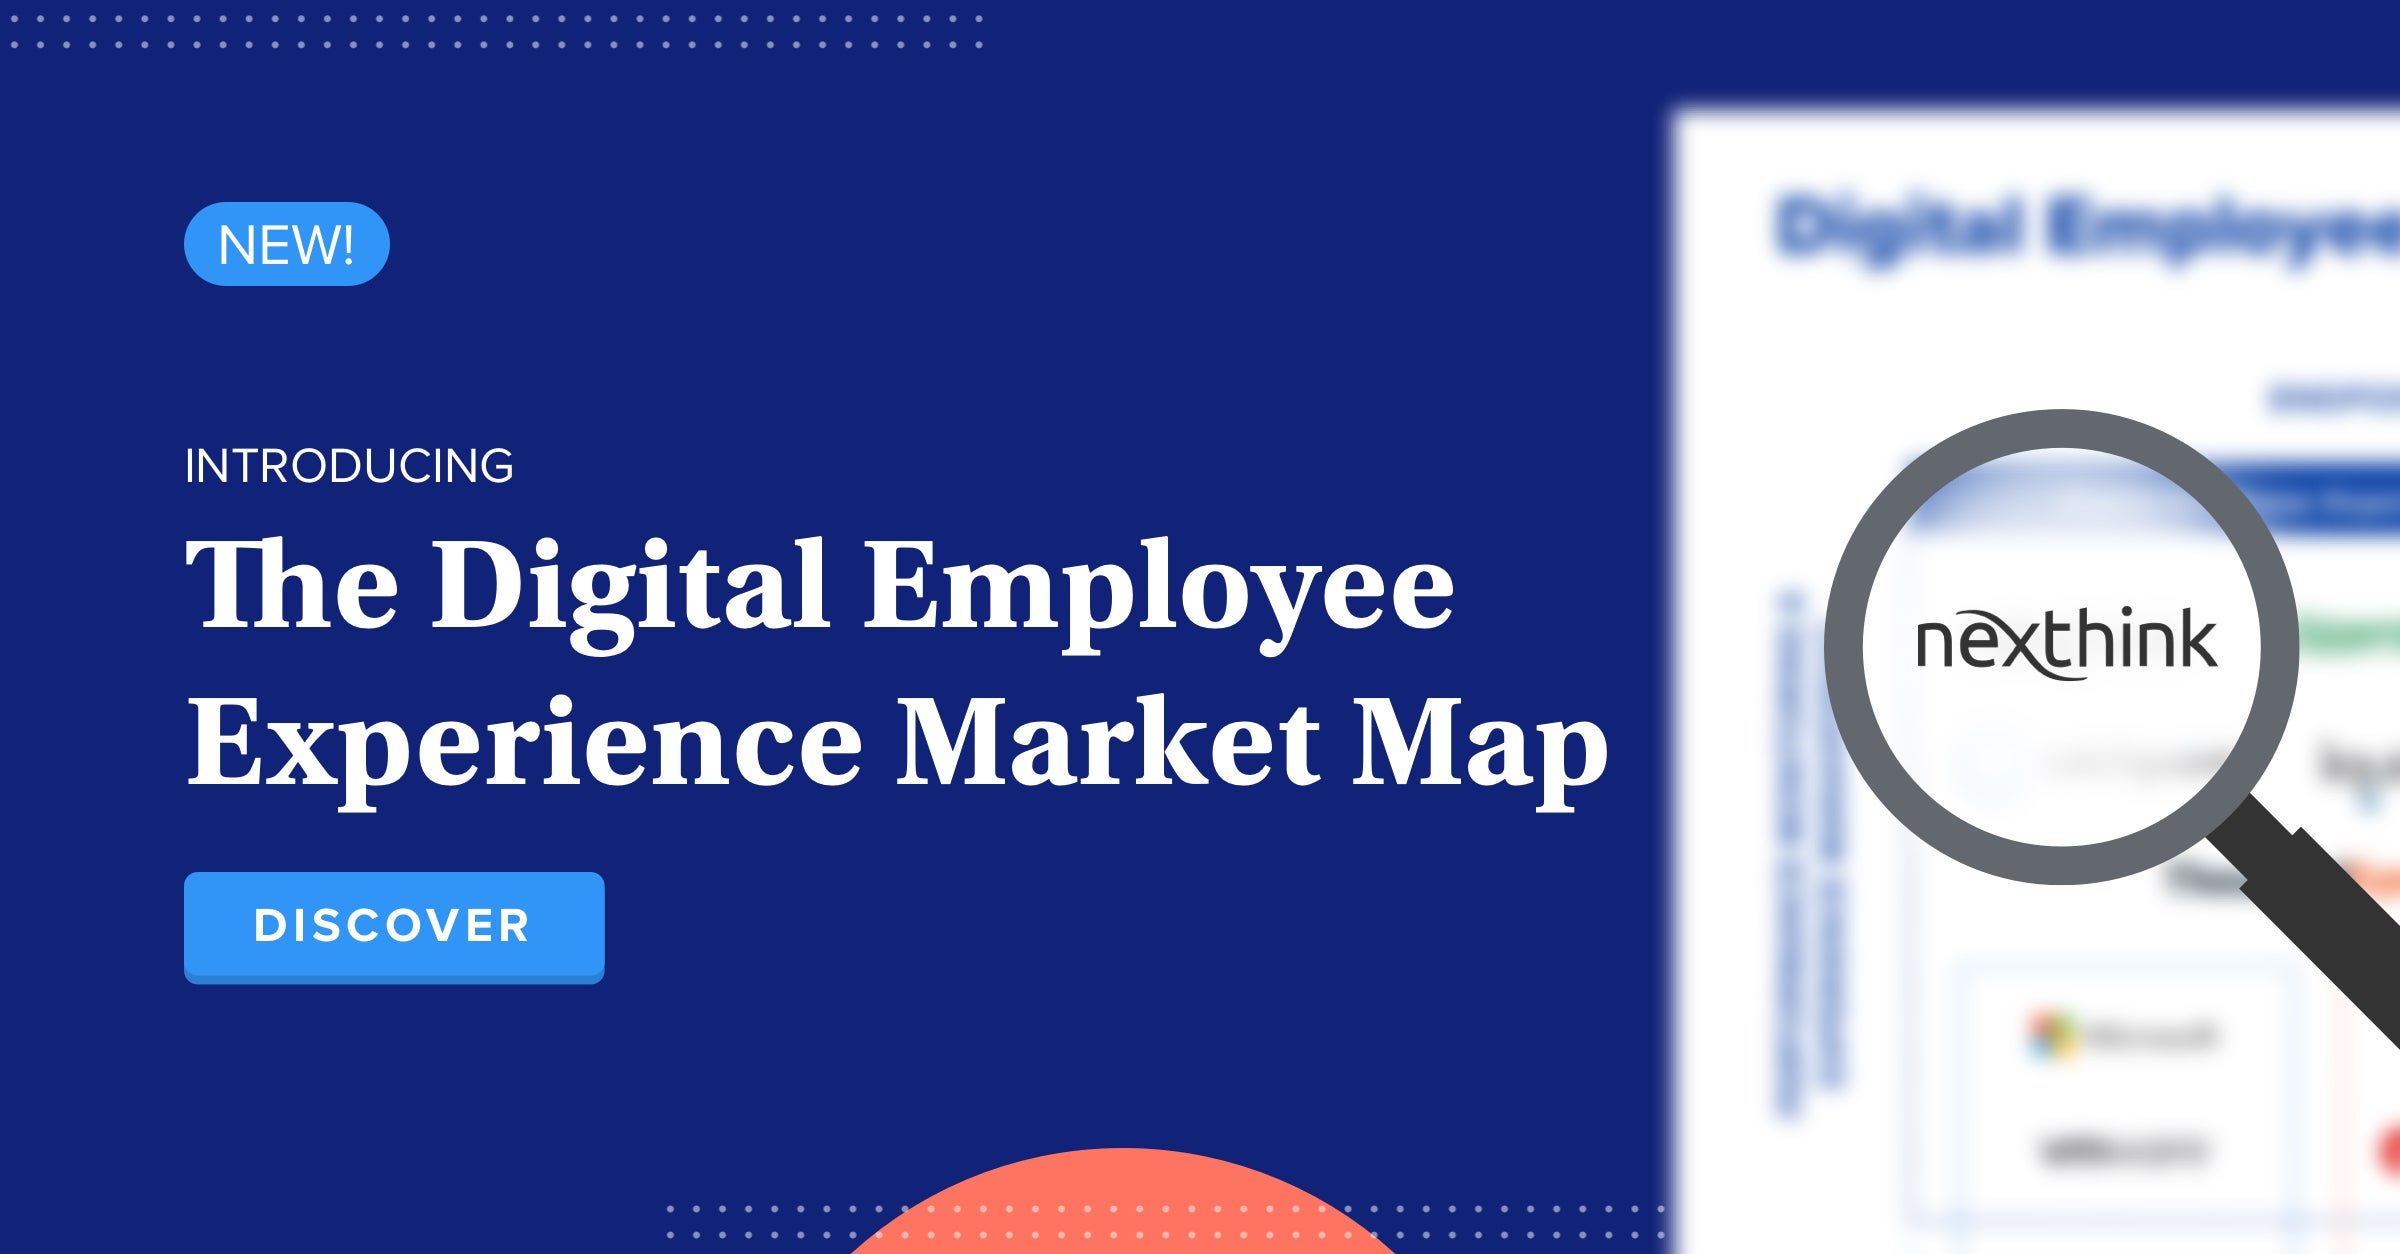 Introducing the Employee Experience and Digital Employee Experience Market Maps